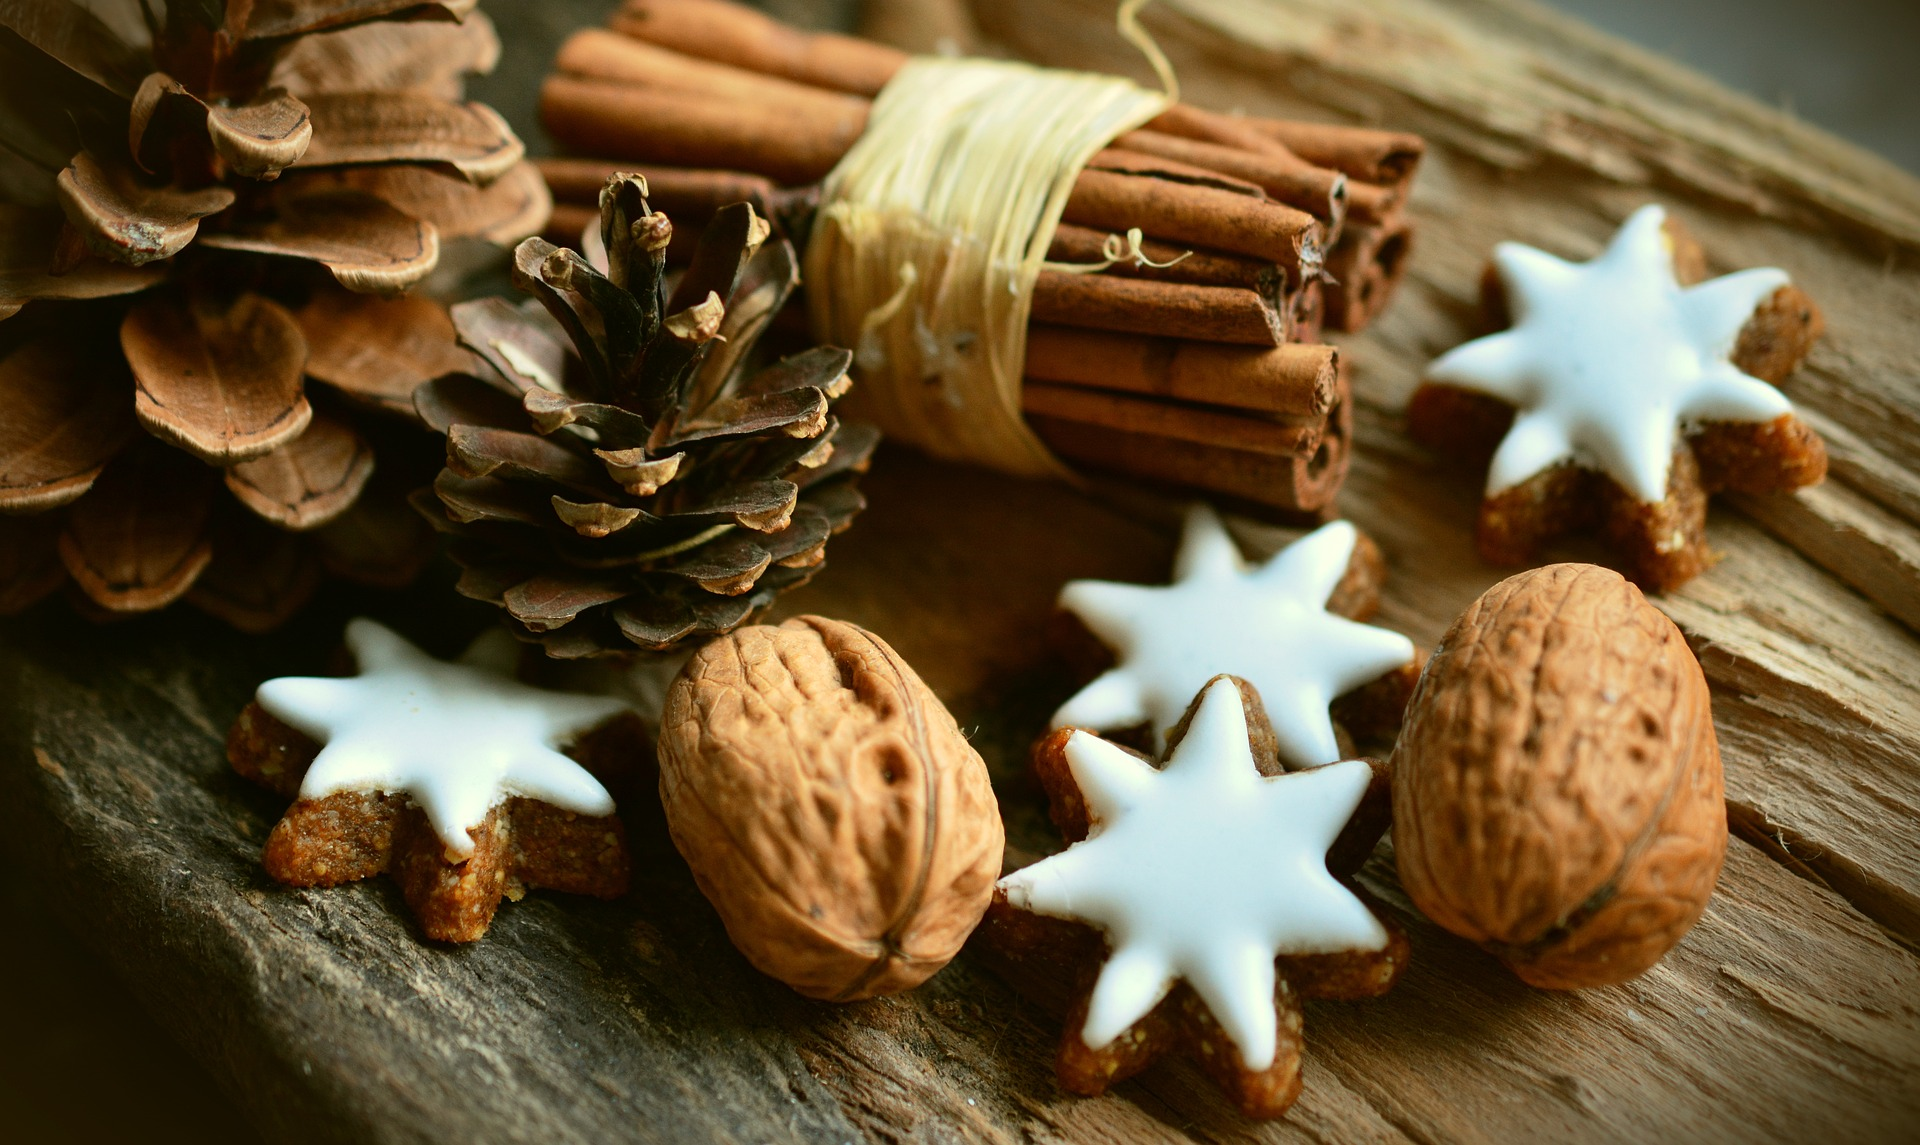 christmas season items walnuts, cinnamon sticks and stars